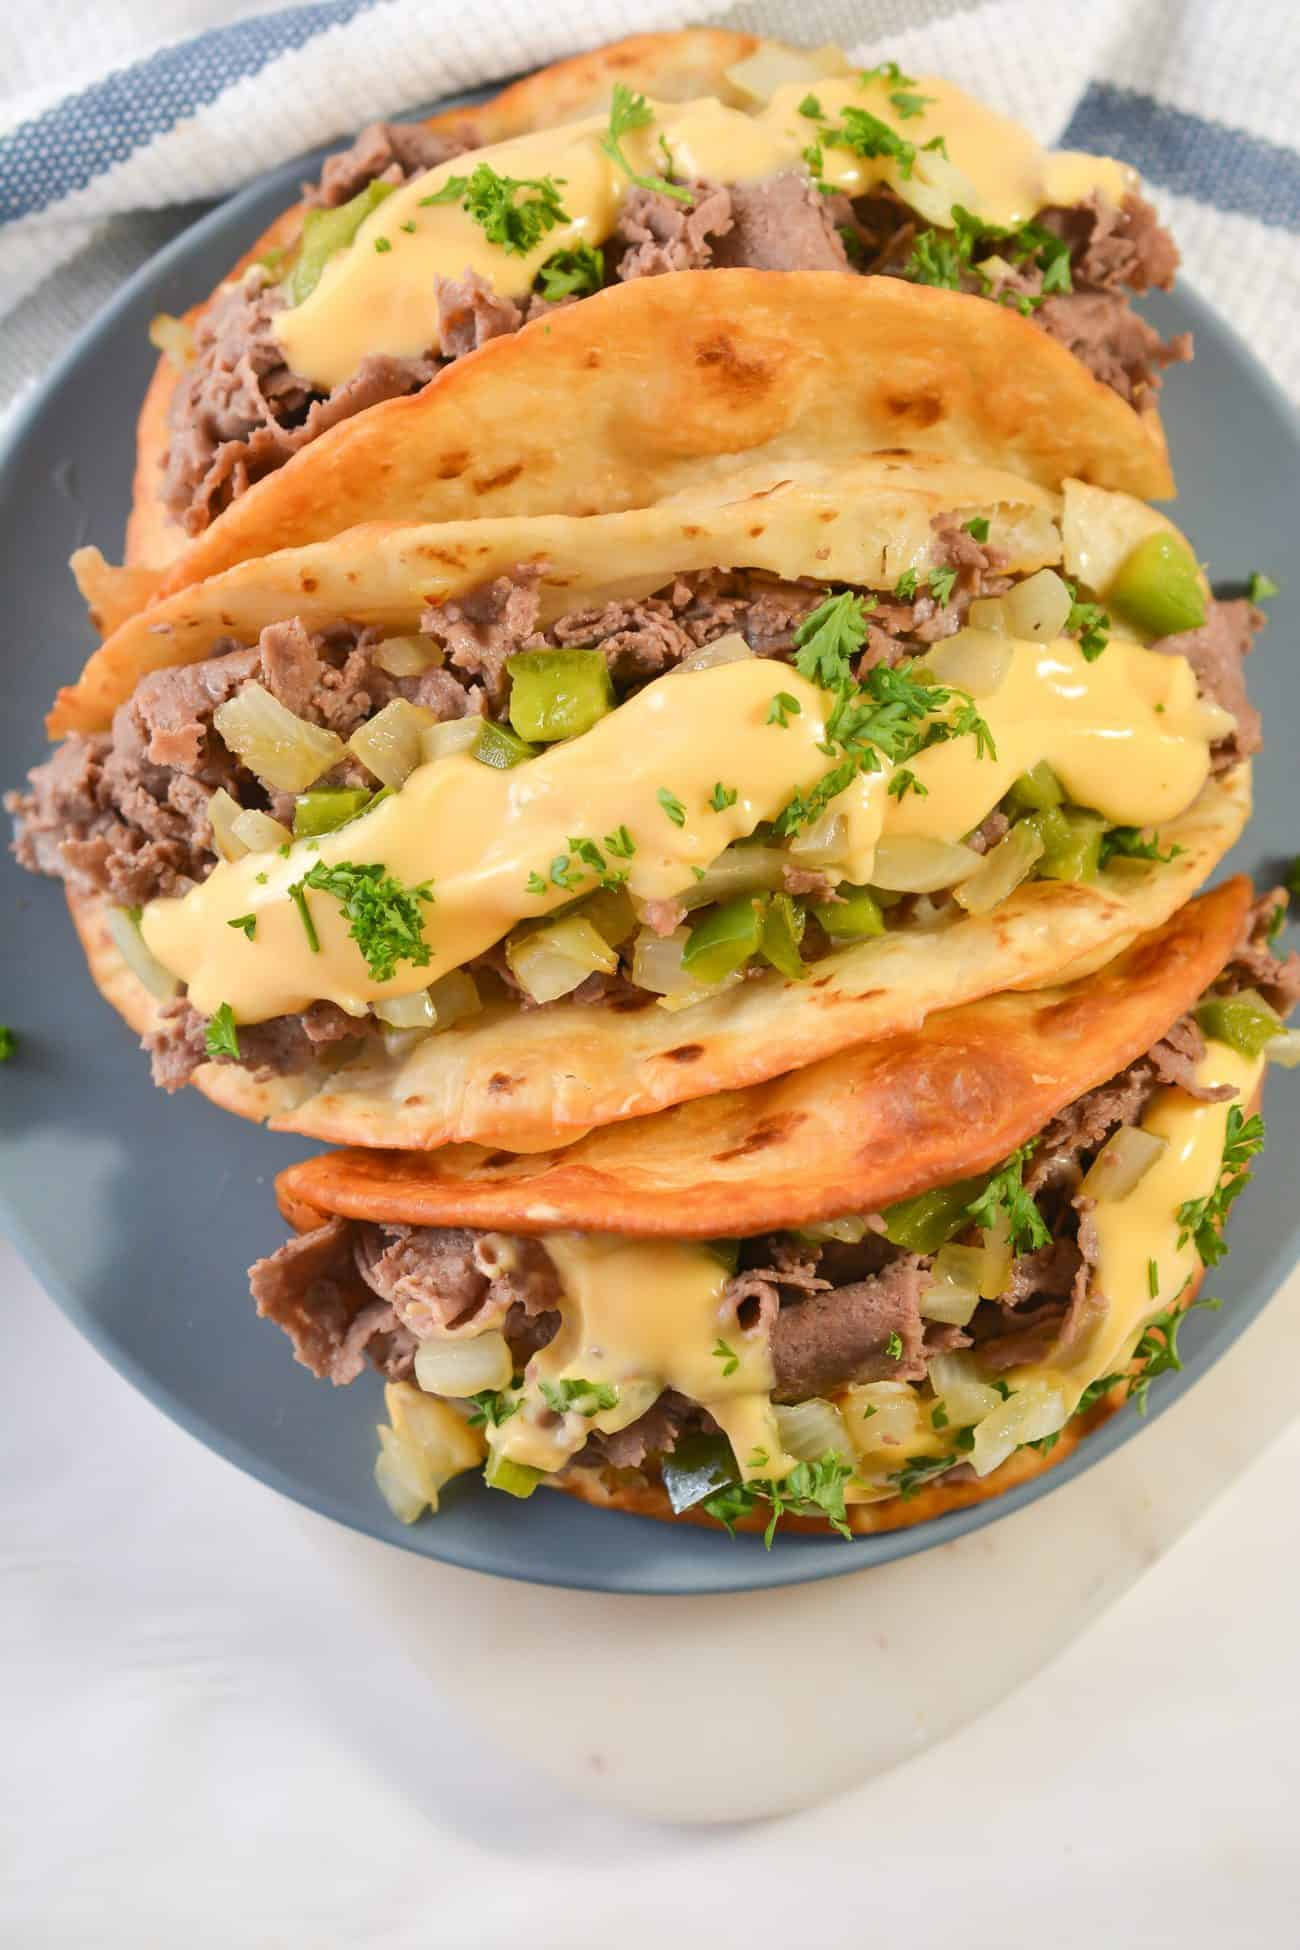 Philly Cheesesteak Tacos